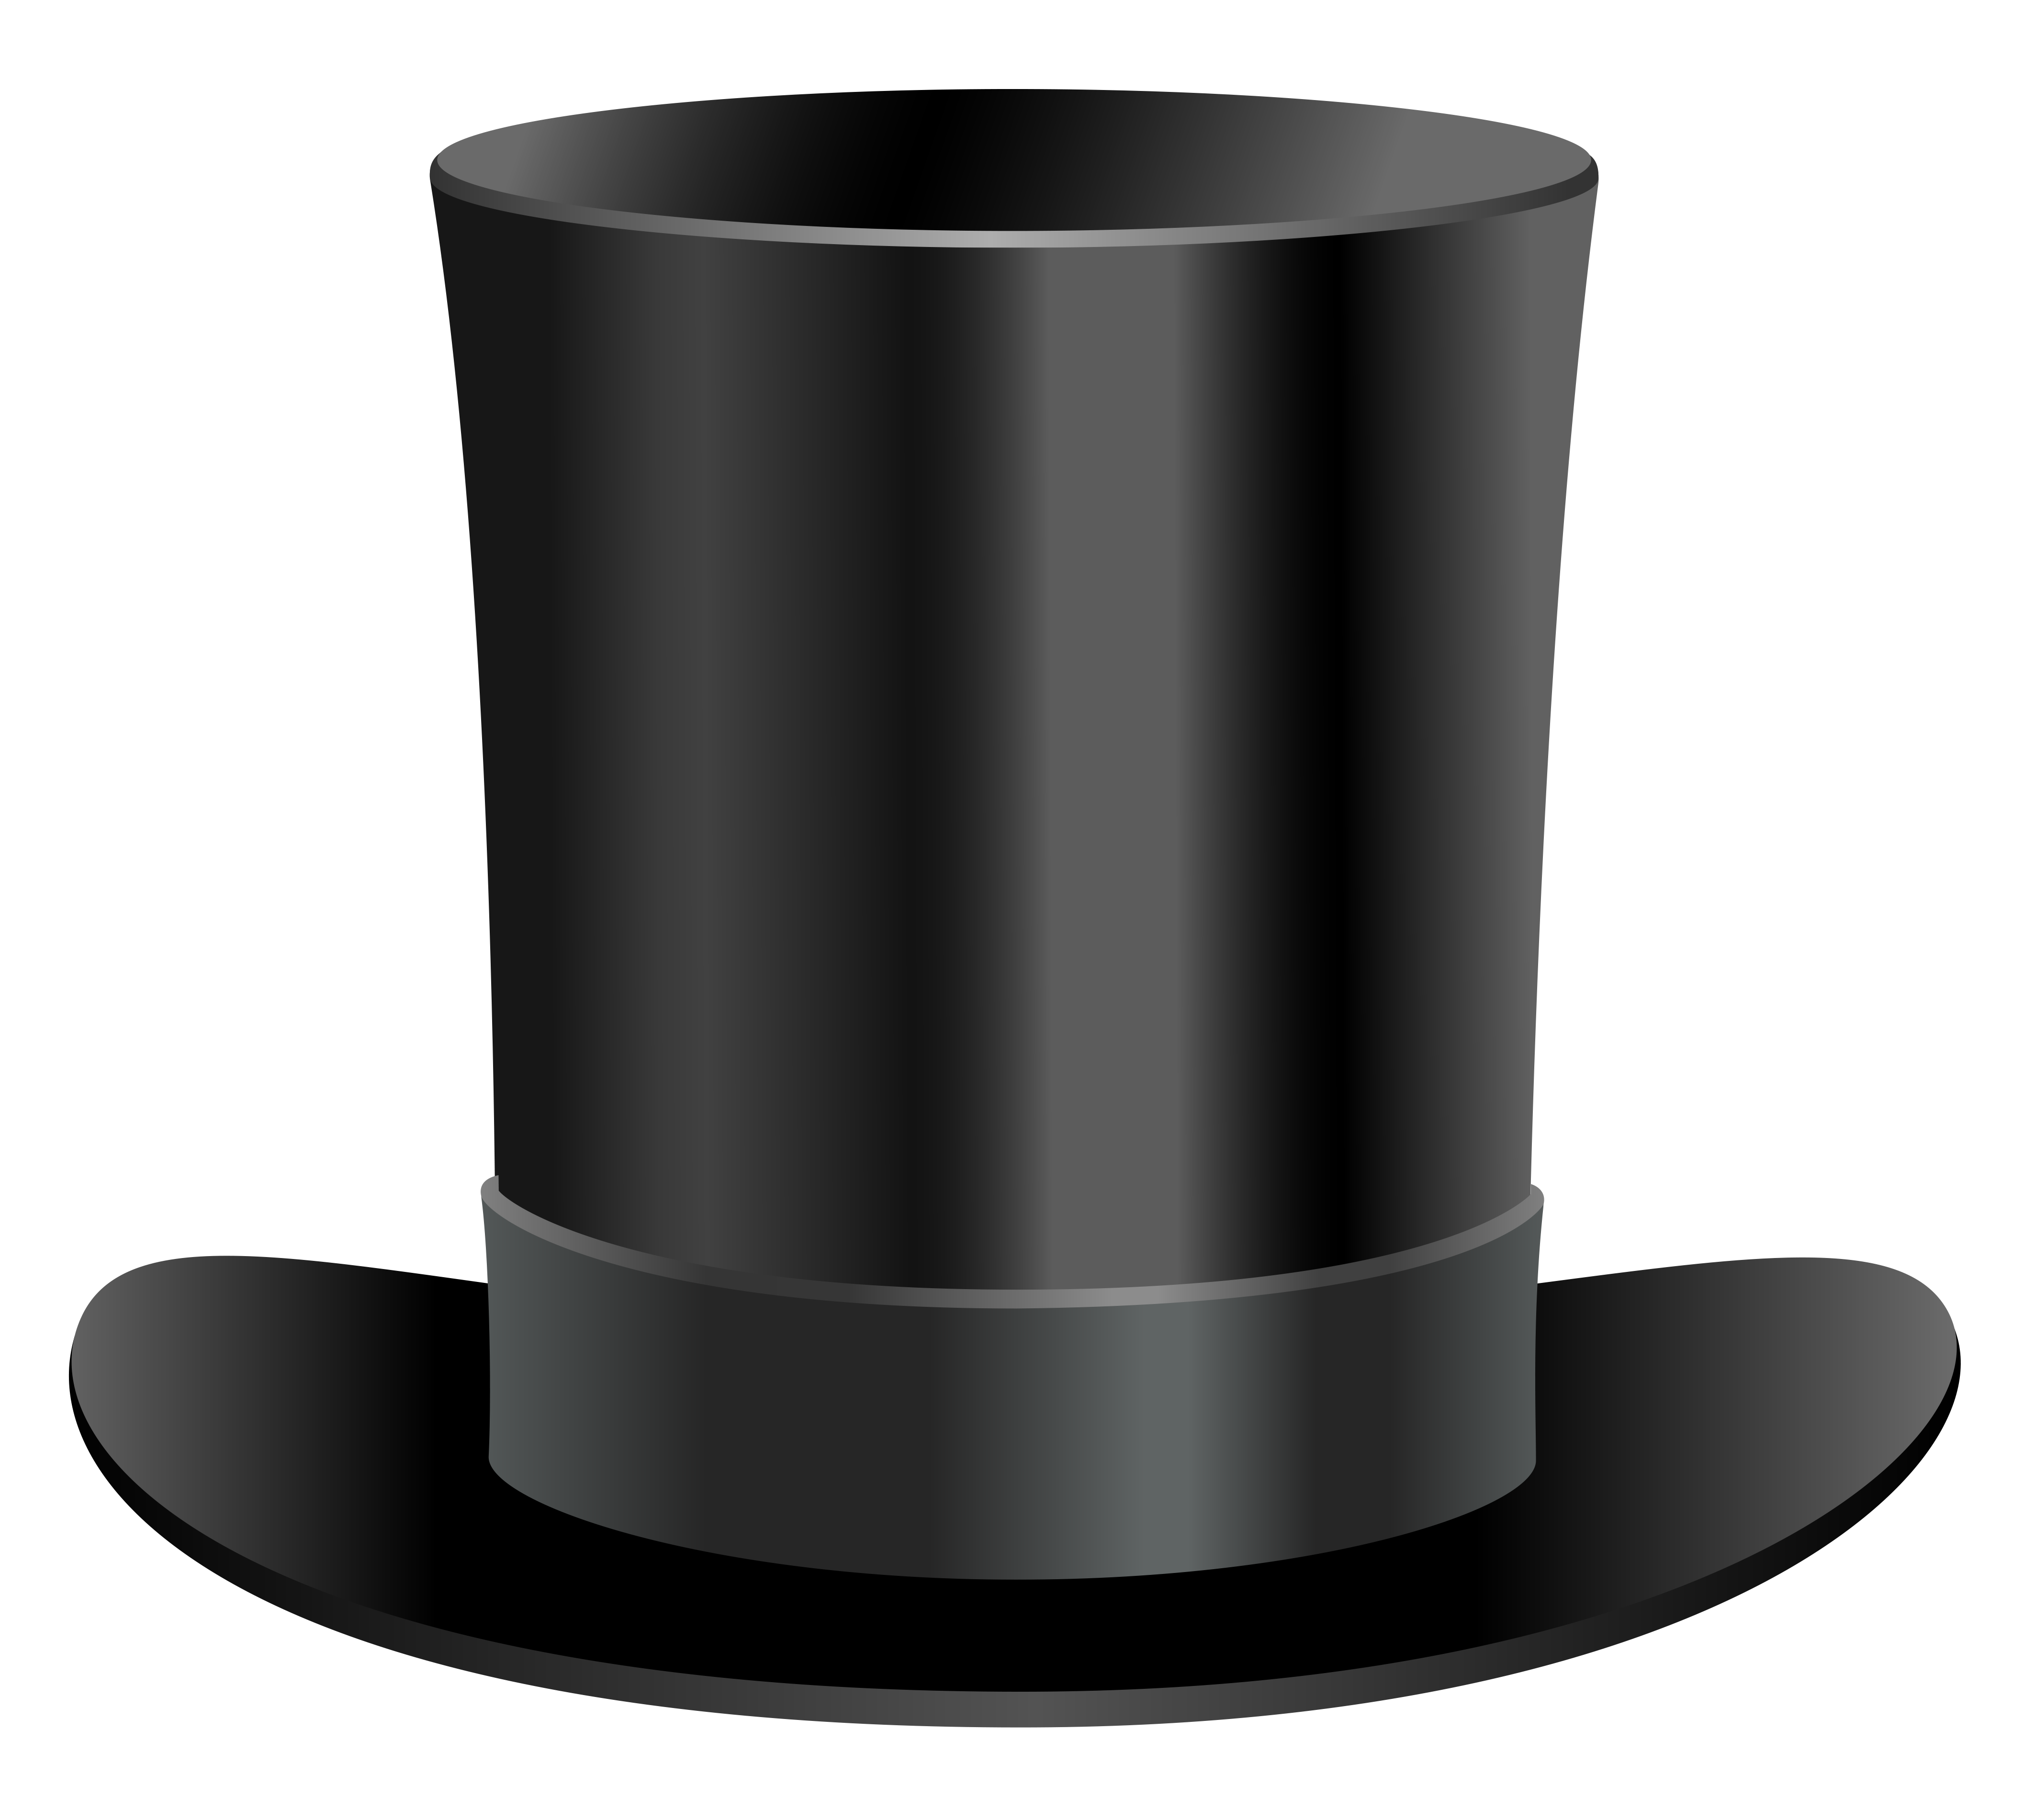 Moustache clipart top hat. Black png gallery yopriceville